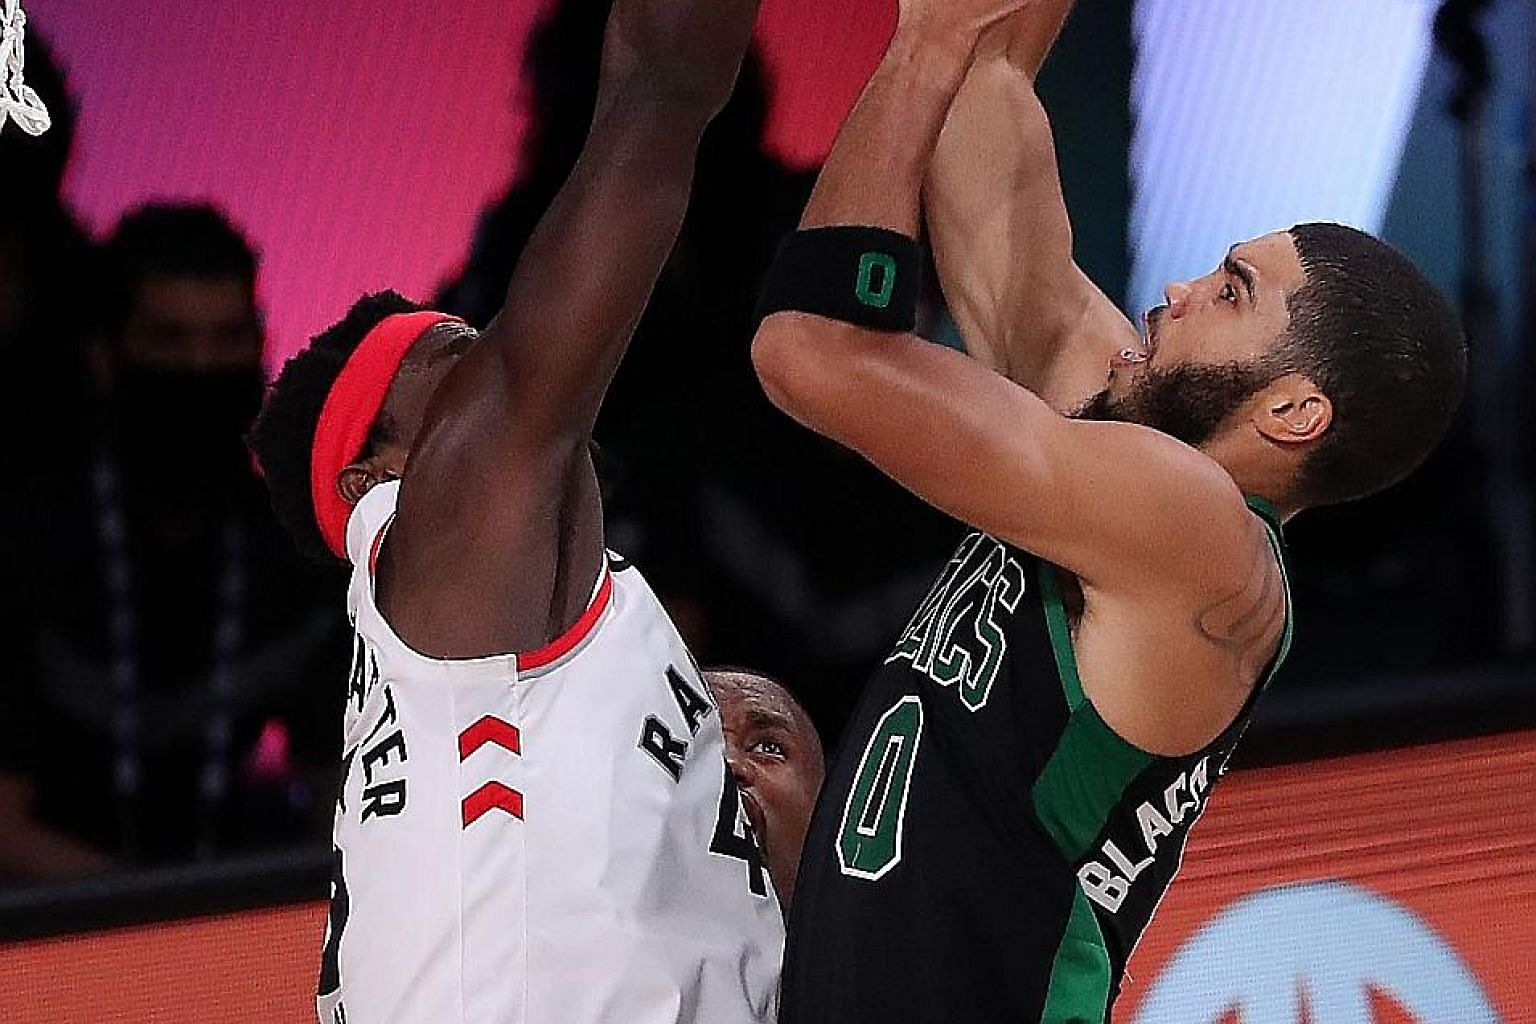 Boston's Jayson Tatum going for a shot as Toronto's Pascal Siakam defends in Game Seven of their Eastern Conference semi-finals in Lake Buena Vista, Florida. Boston eliminated the champions and are aiming to reach the NBA Finals for the first time in